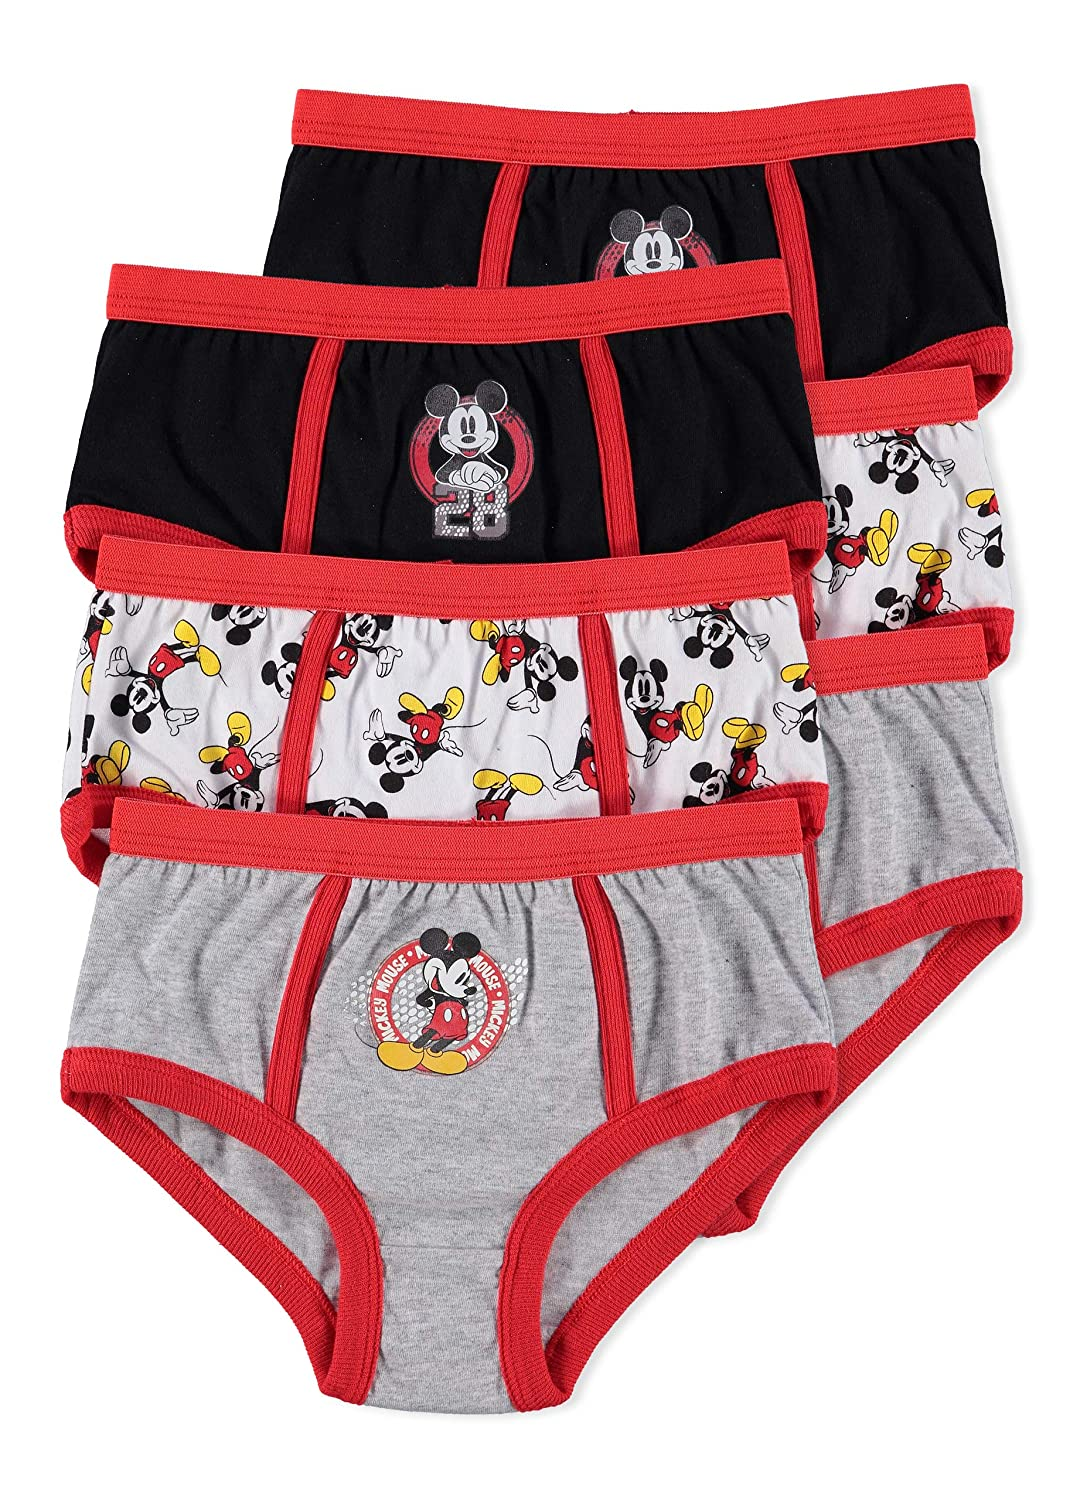 Disney Mickey Mouse Boys Underwear | Briefs 6-pack Jellifish Kids